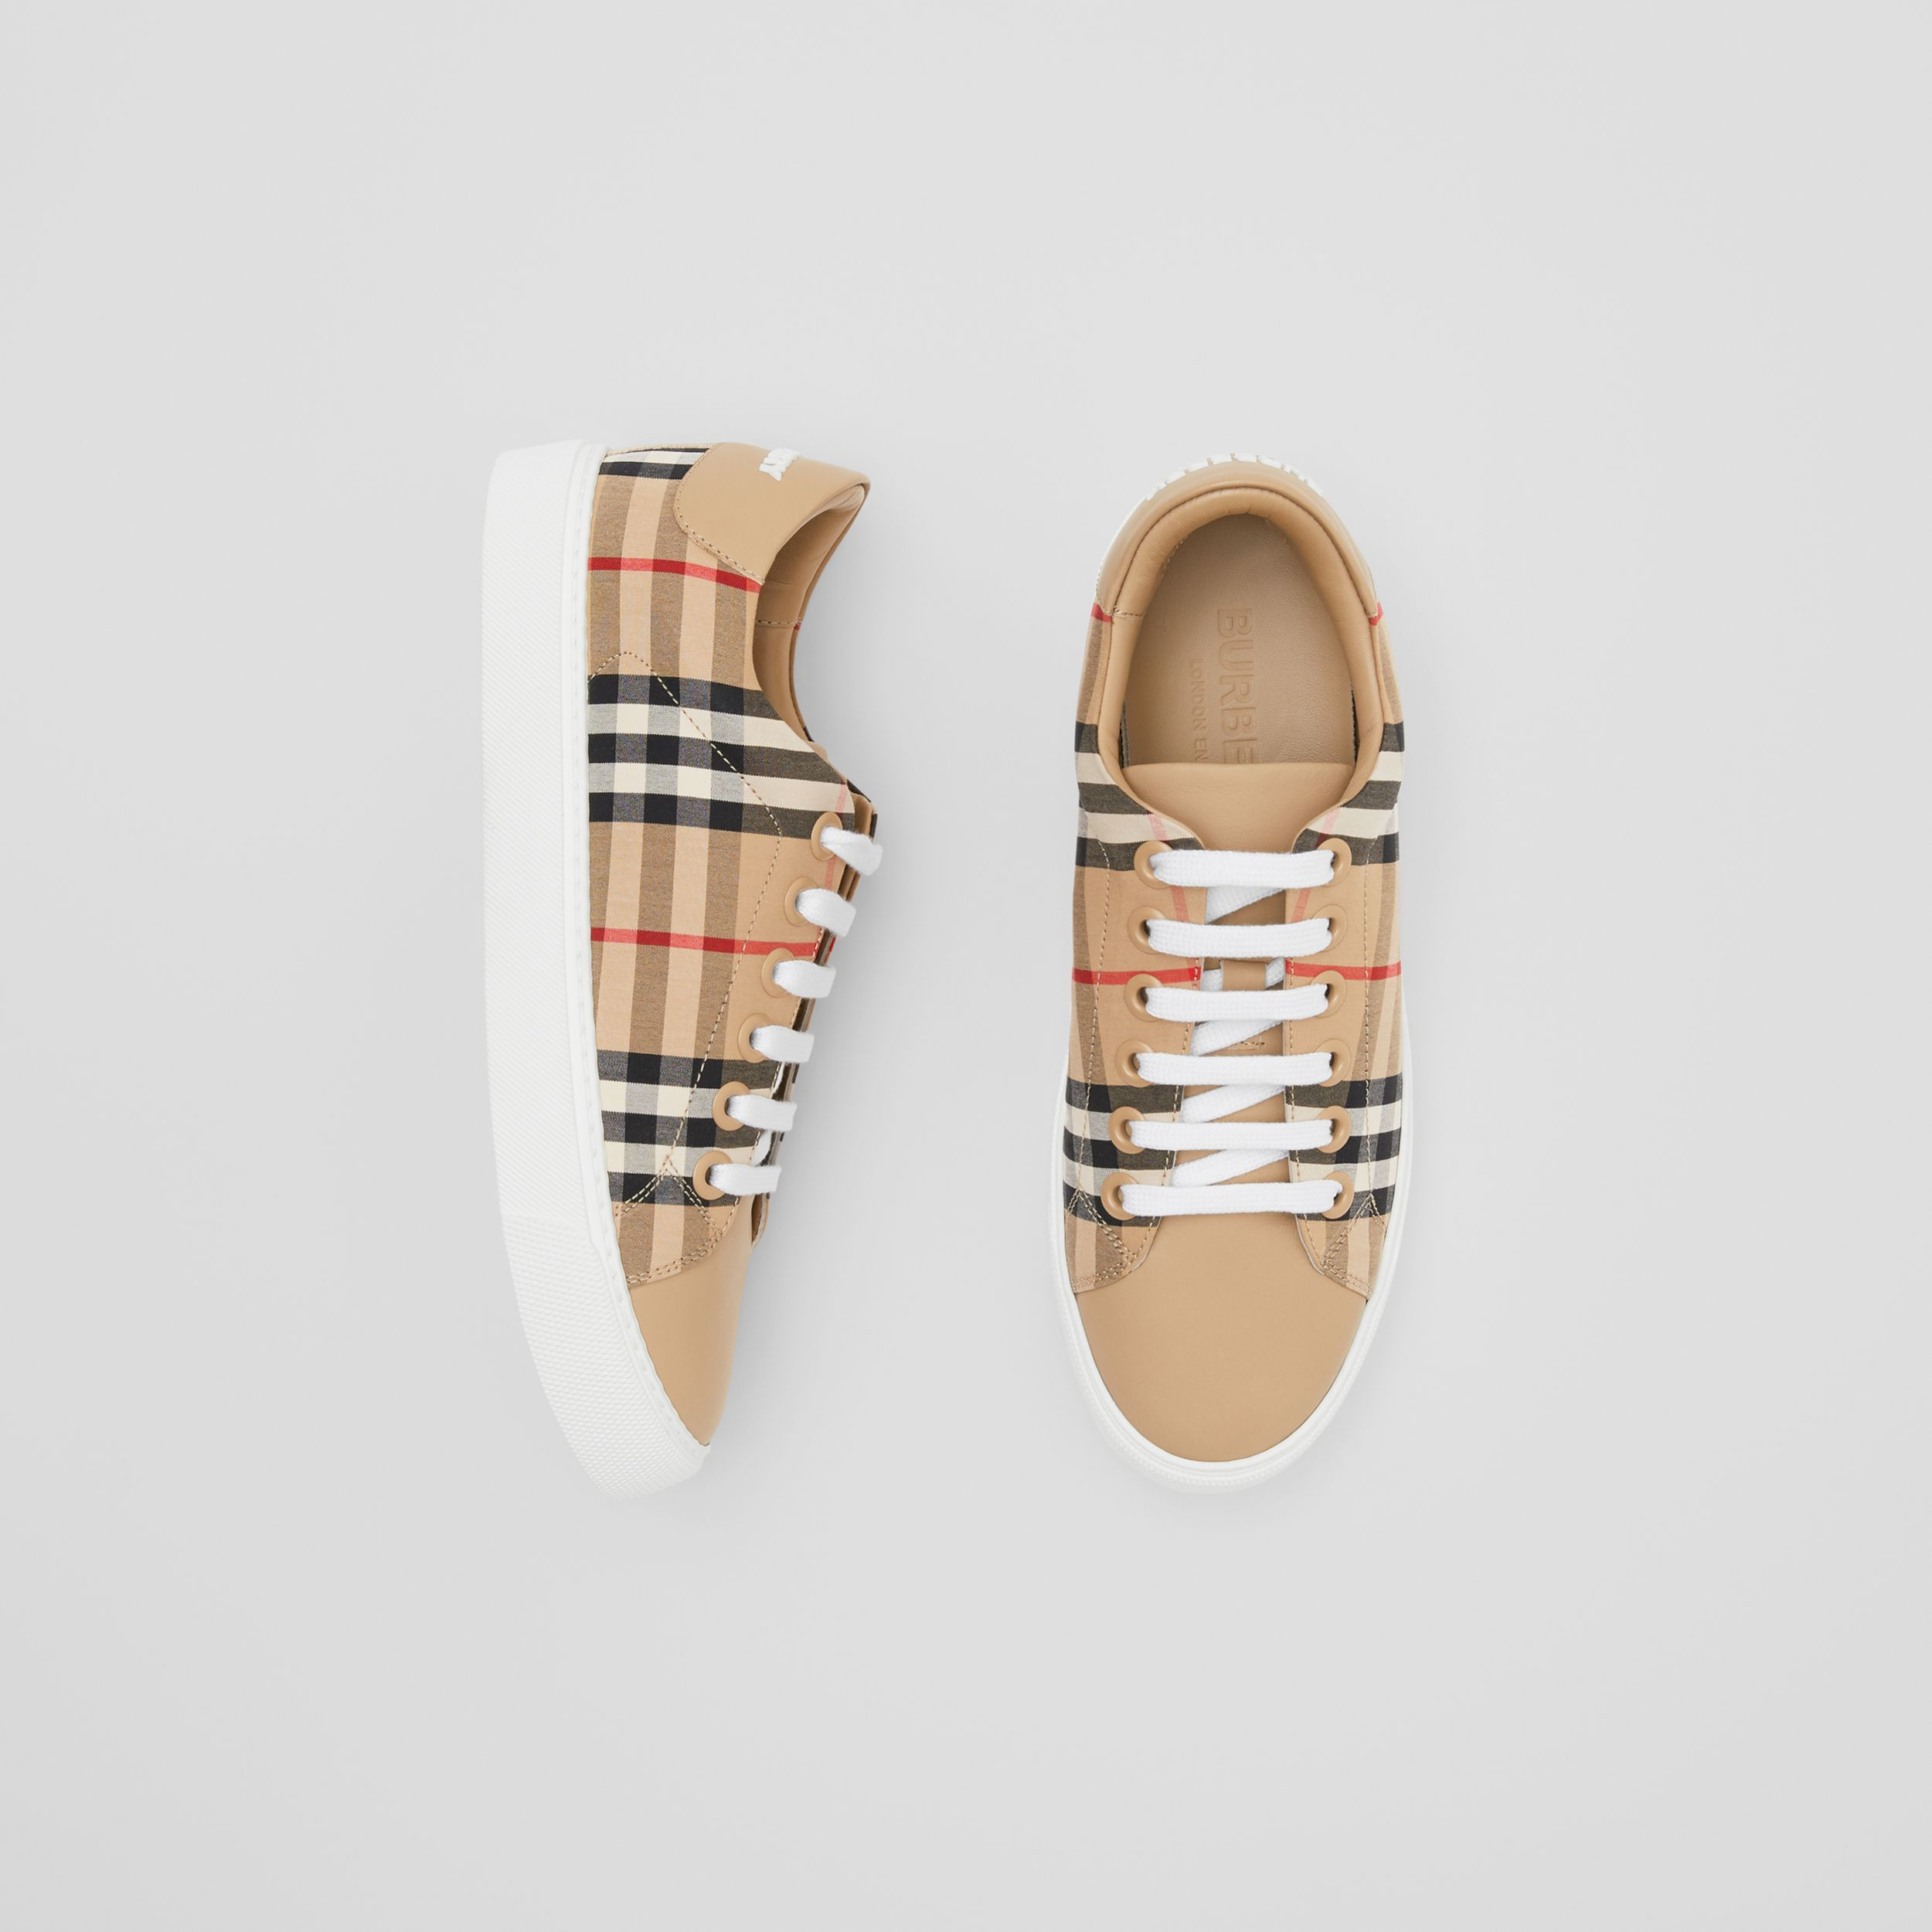 Vintage Check and Leather Sneakers in Archive Beige - Women | Burberry - 1